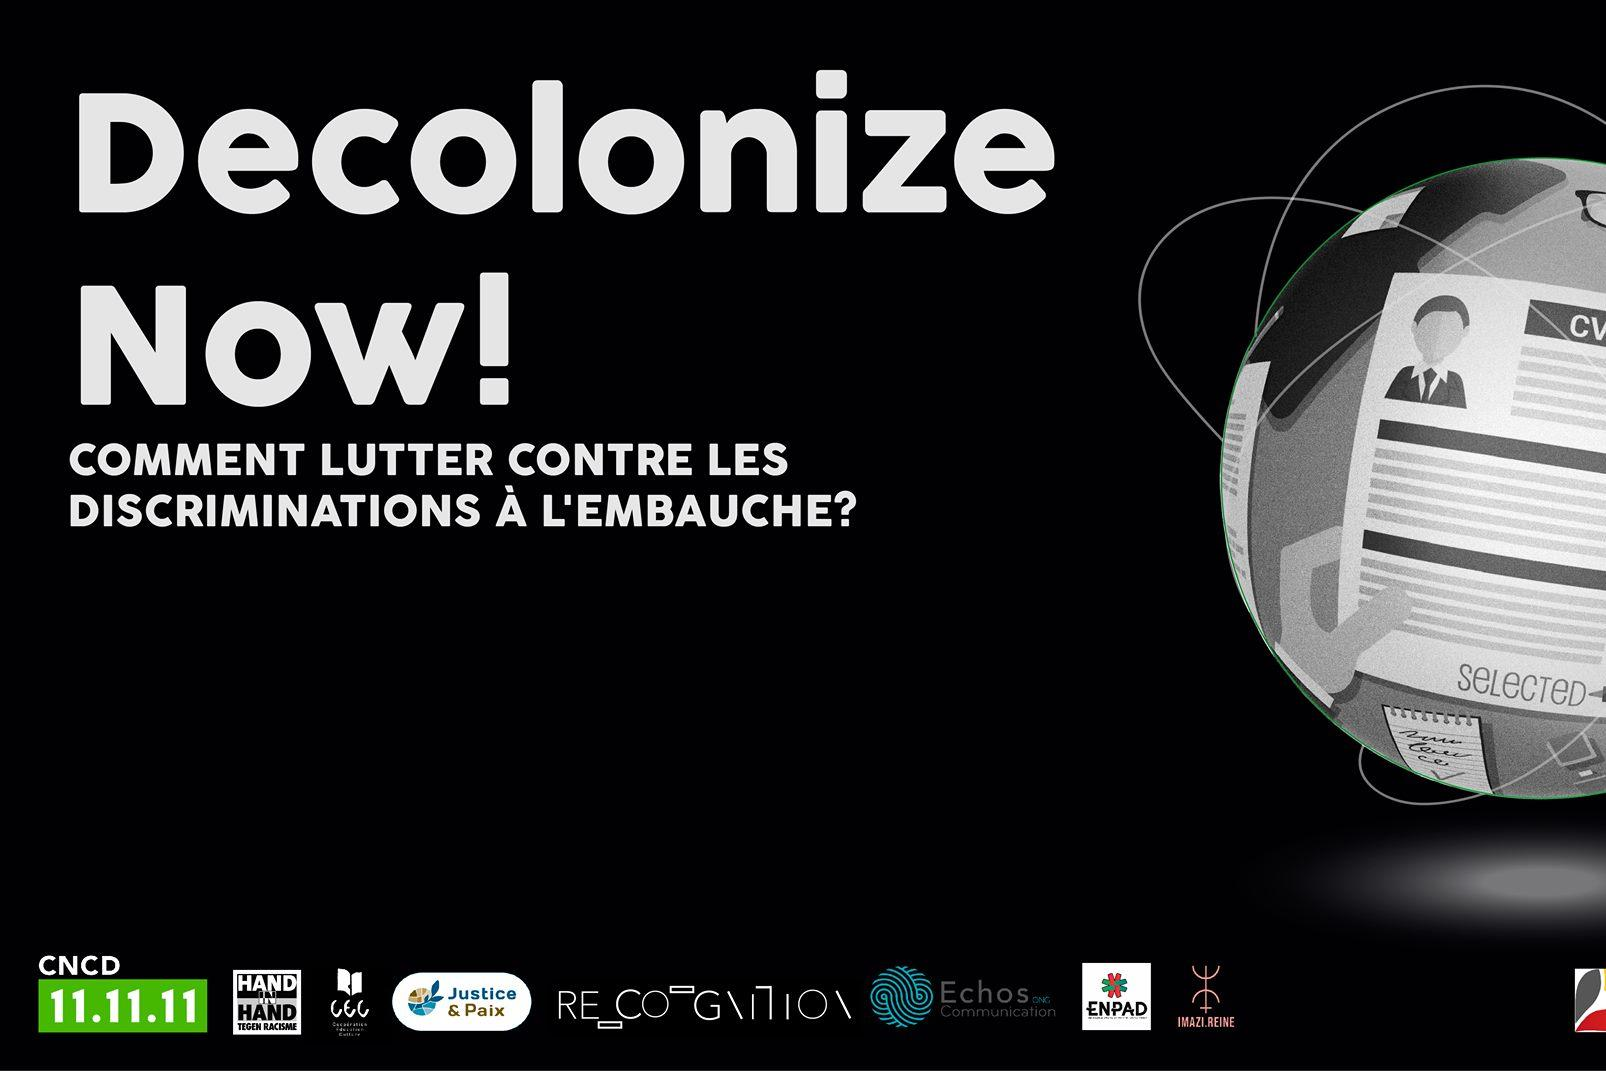 Decolonize Now! Comment lutter contre les discriminations à l'embauche?